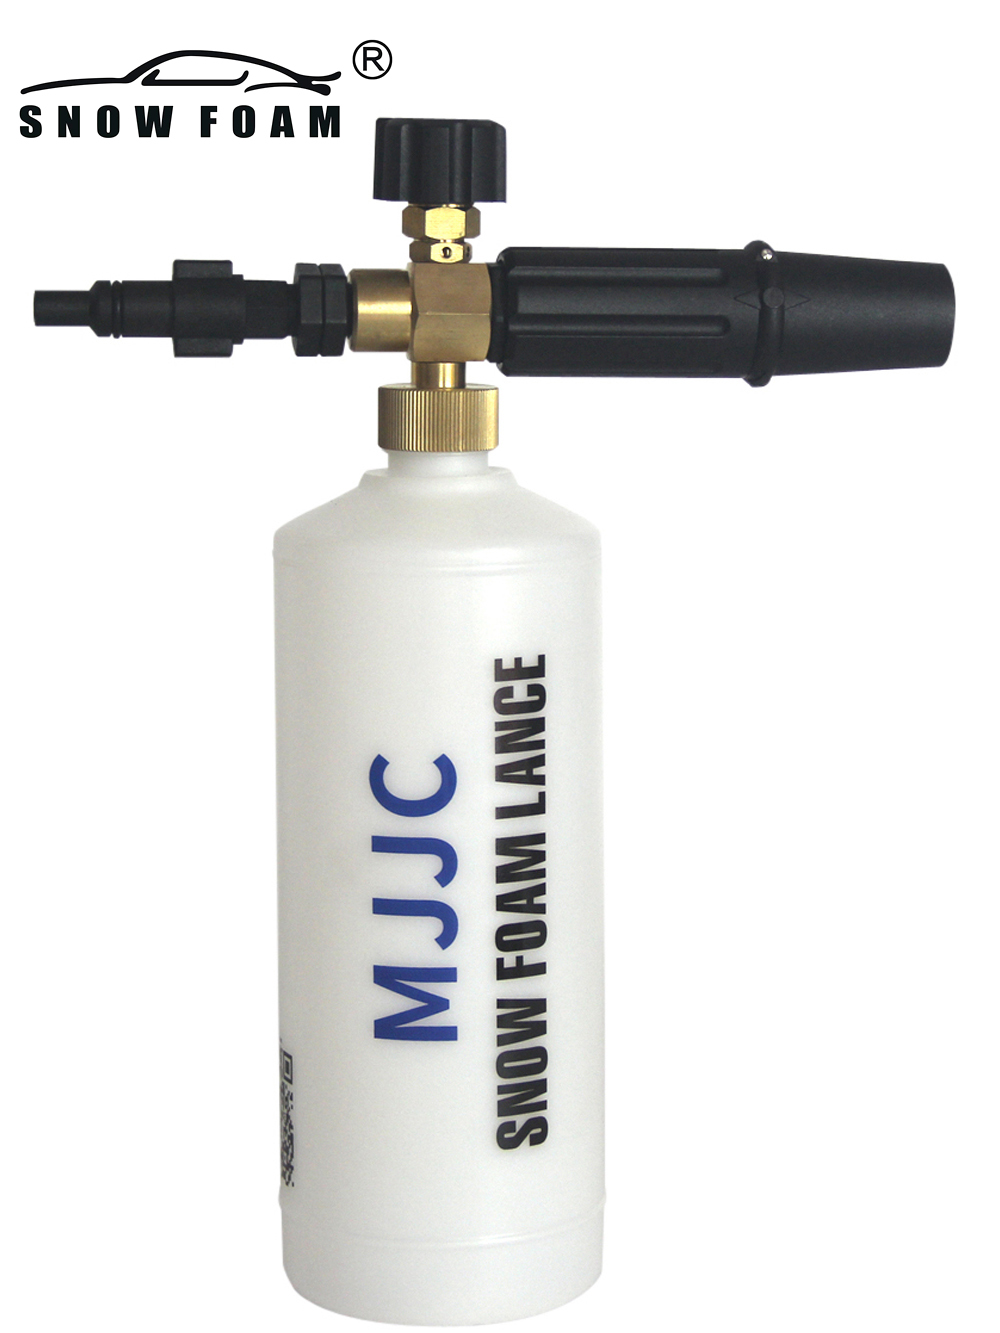 Foam Lance Foam Cannon, Foam Cannon for Lavor and Parkside pressure car washer